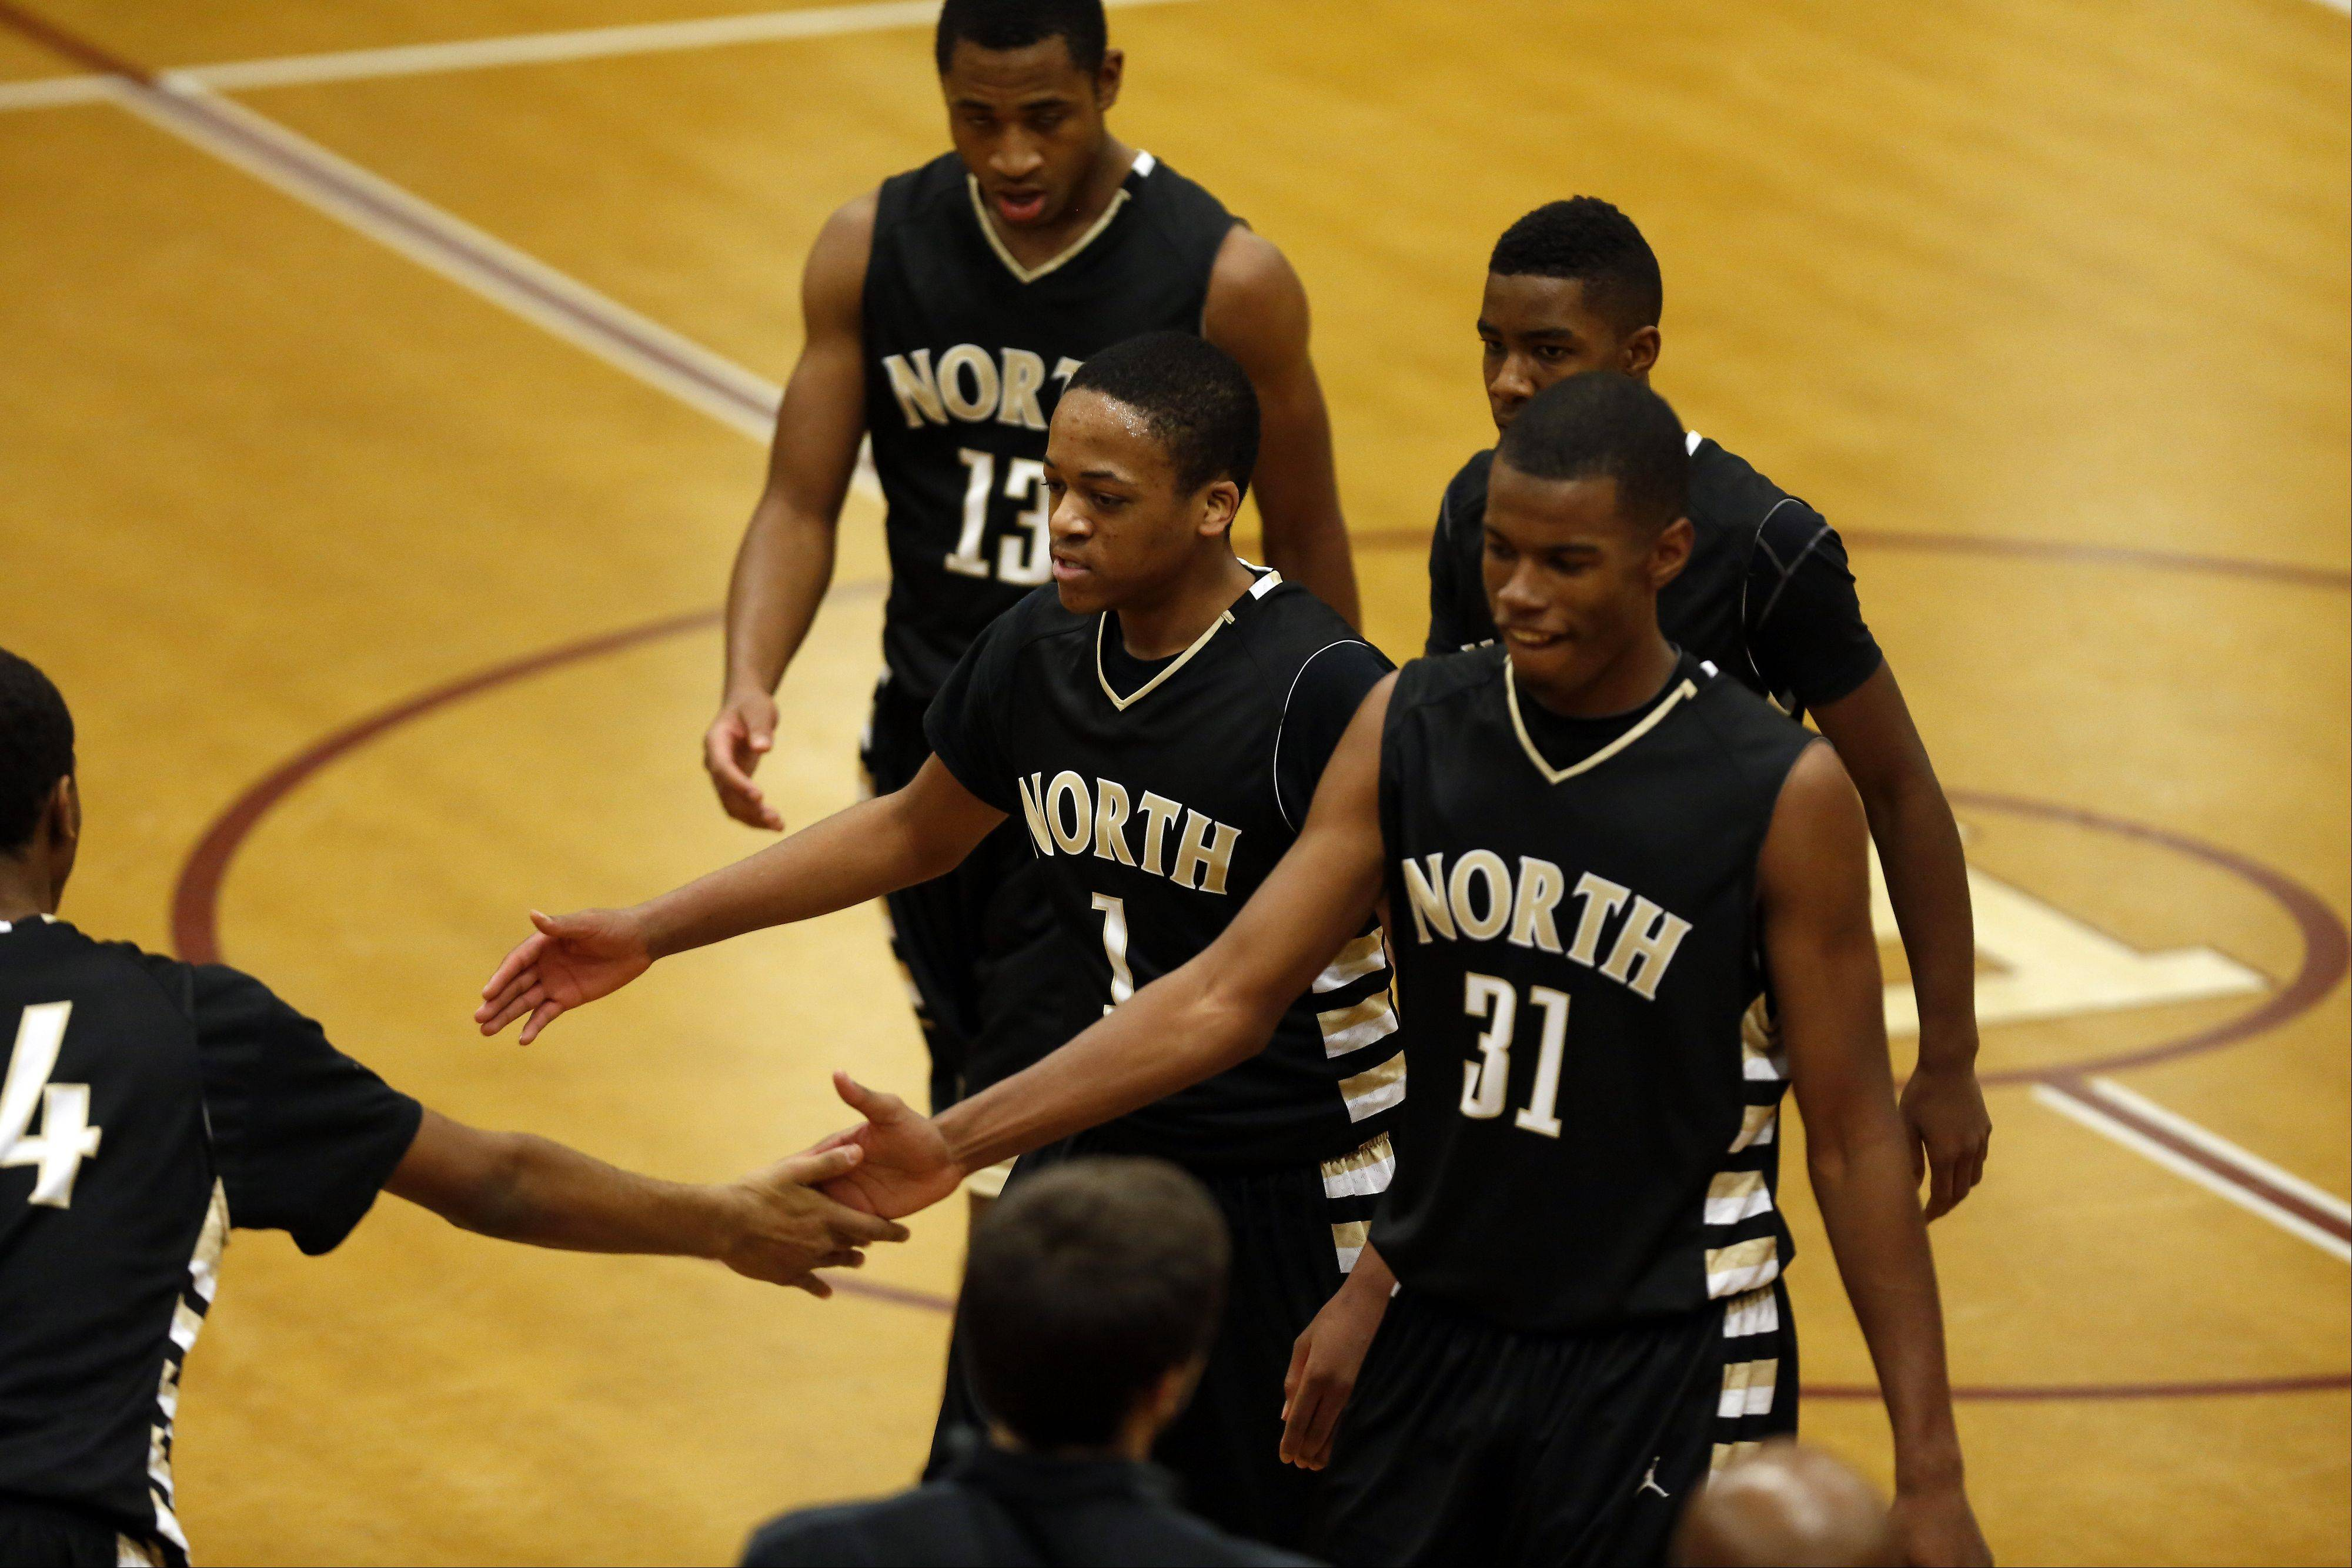 Glenbard North's Jeremiah Fleming, center, and Chip Flanigan, right, leave the court at the end of the third quarter against Elgin at the 39th Annual Elgin Boys Holiday Basketball Tournament at Elgin High School Saturday.